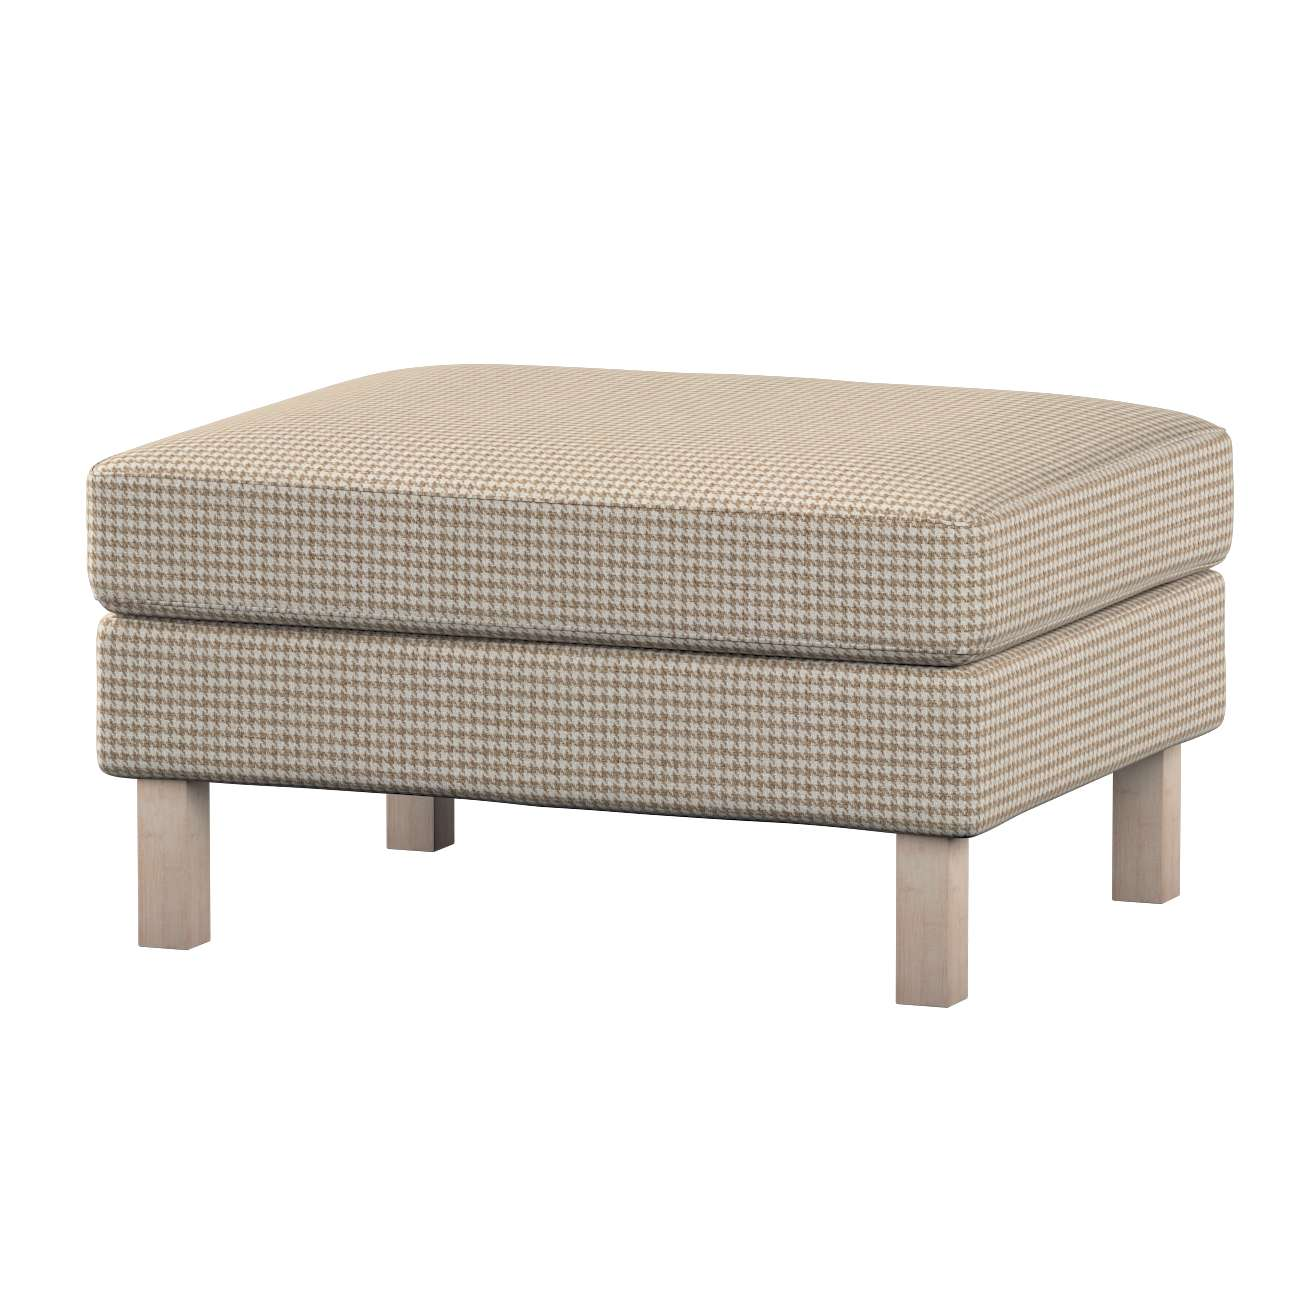 Karlstad footstool cover Karlstad footstool cover in collection Edinburgh, fabric: 703-12